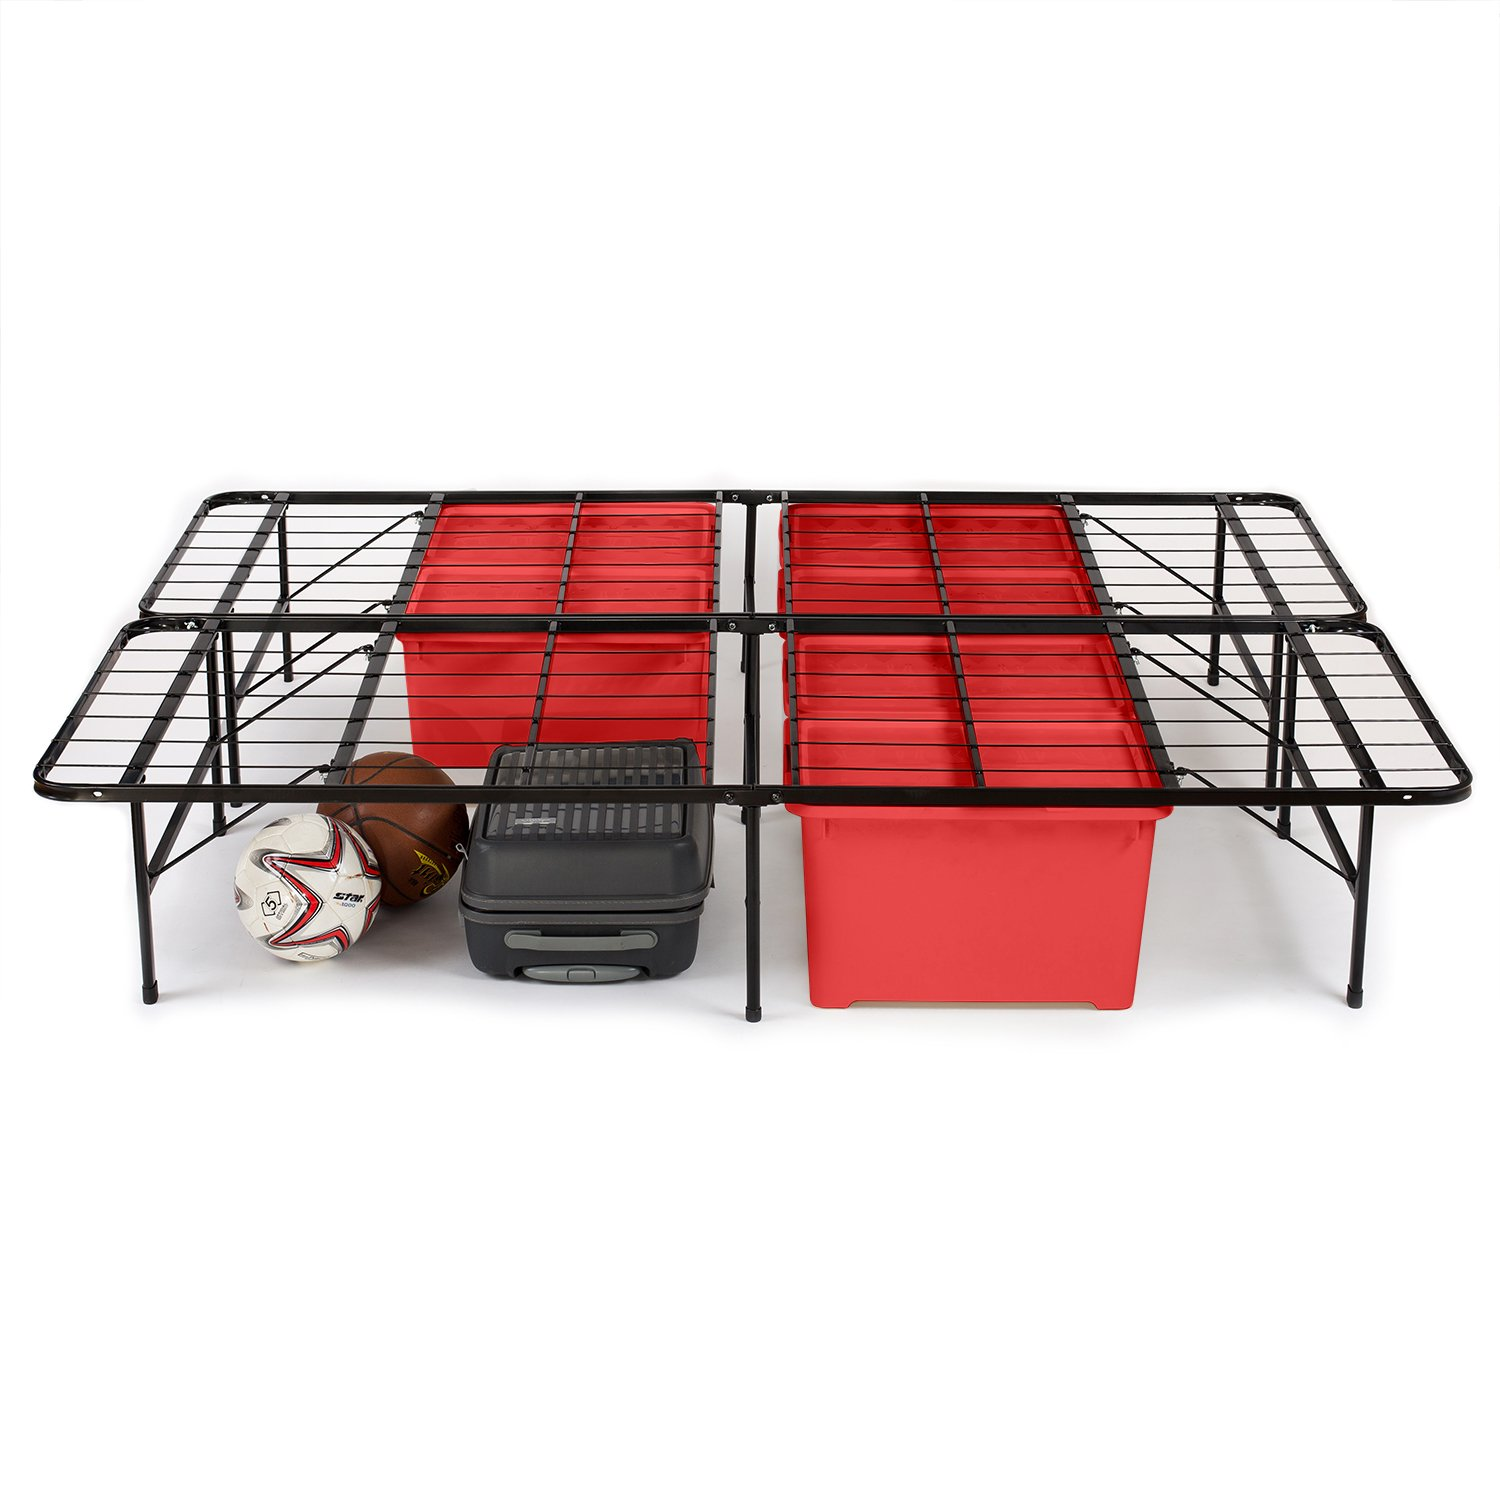 Heavy Duty King Bed Frames For Plus Size People